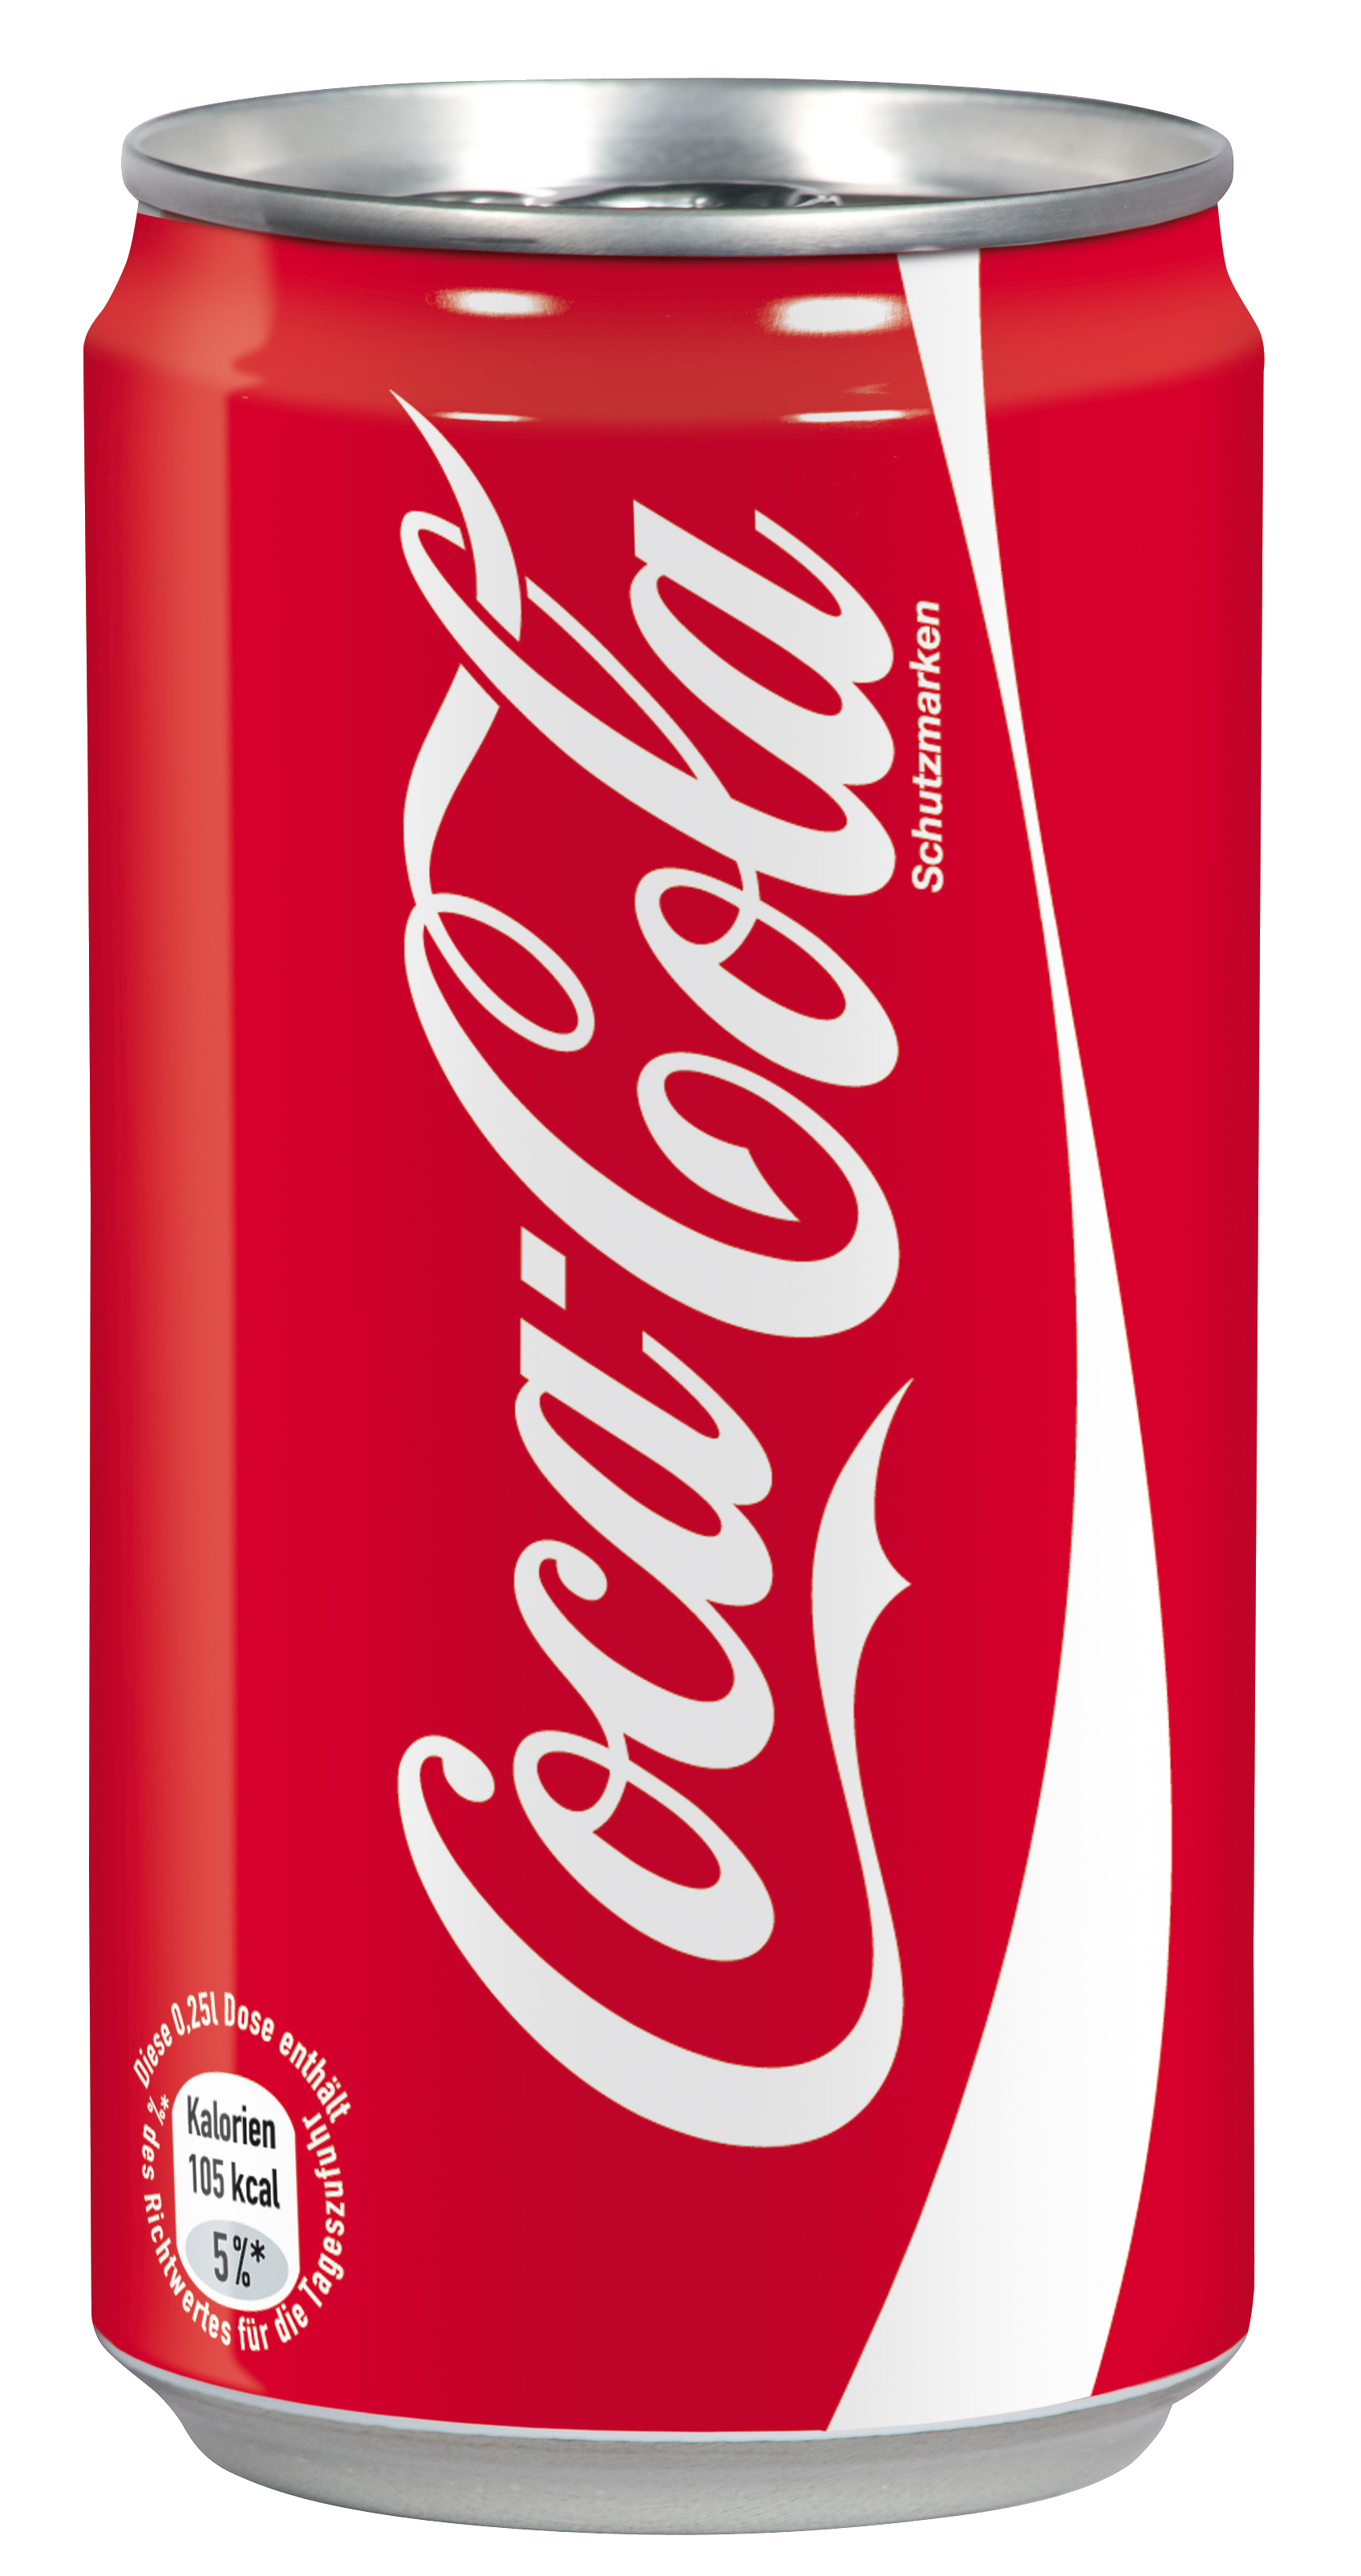 Coca Cola Can Png Image - Coke, Transparent background PNG HD thumbnail